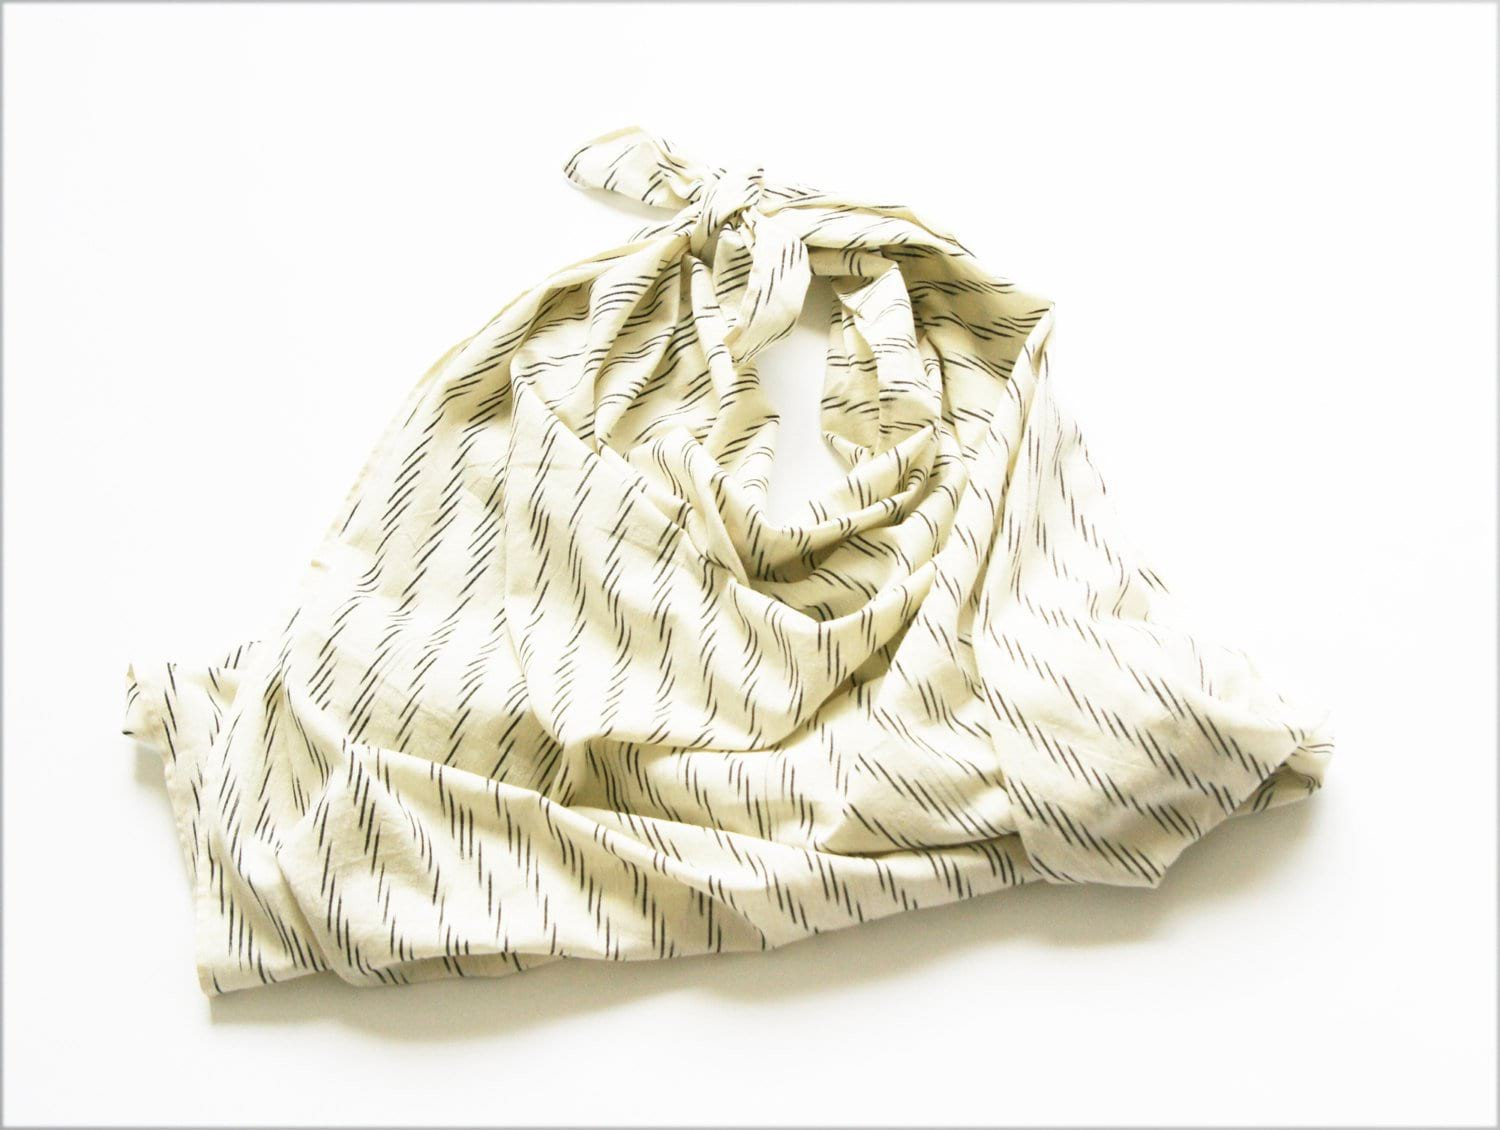 Rustic Loom White Zebra Stripe Artisan Woven Ikat Baby Swaddle Jungle Pillows